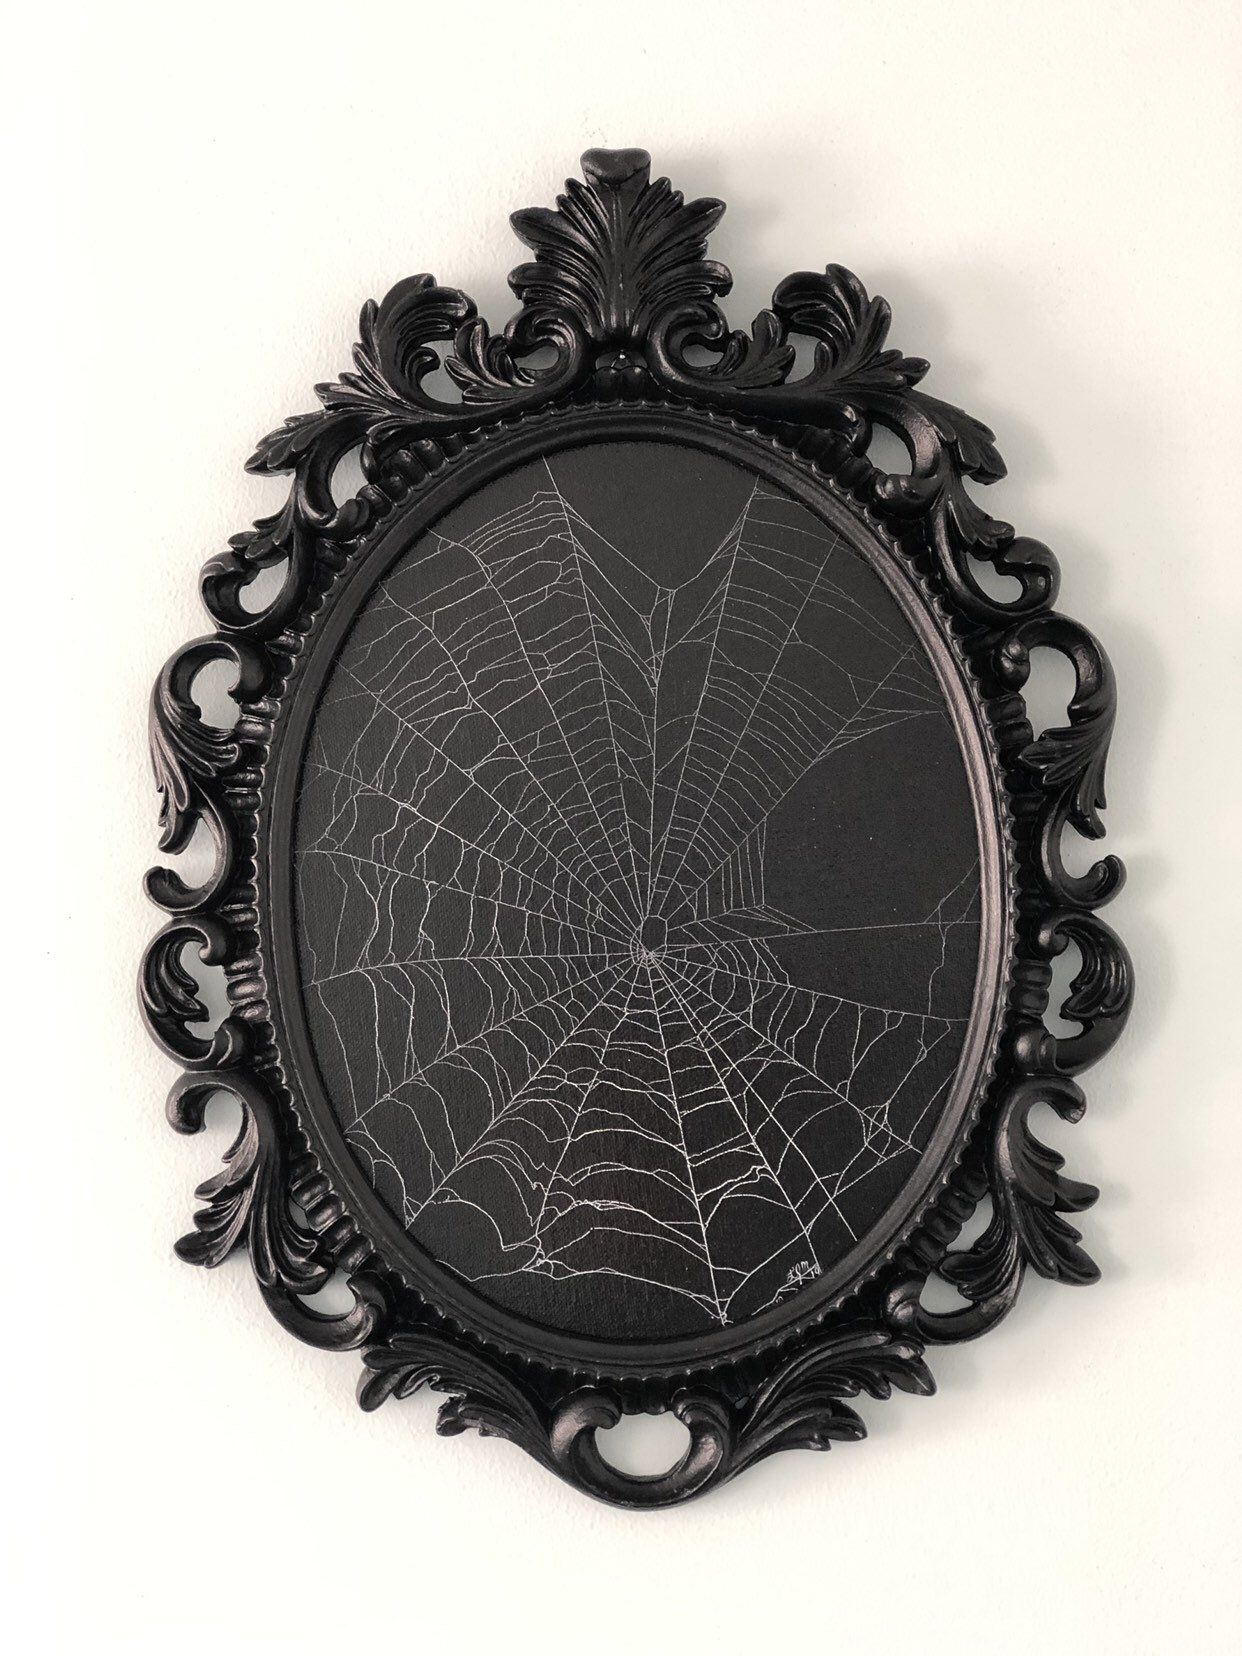 Photo of Real Spider Web, Preserved Spider Web, Framed Spider Web, Spider Web Art, Spider Taxidermy, Real Nature Decor, Gothic Home Decor